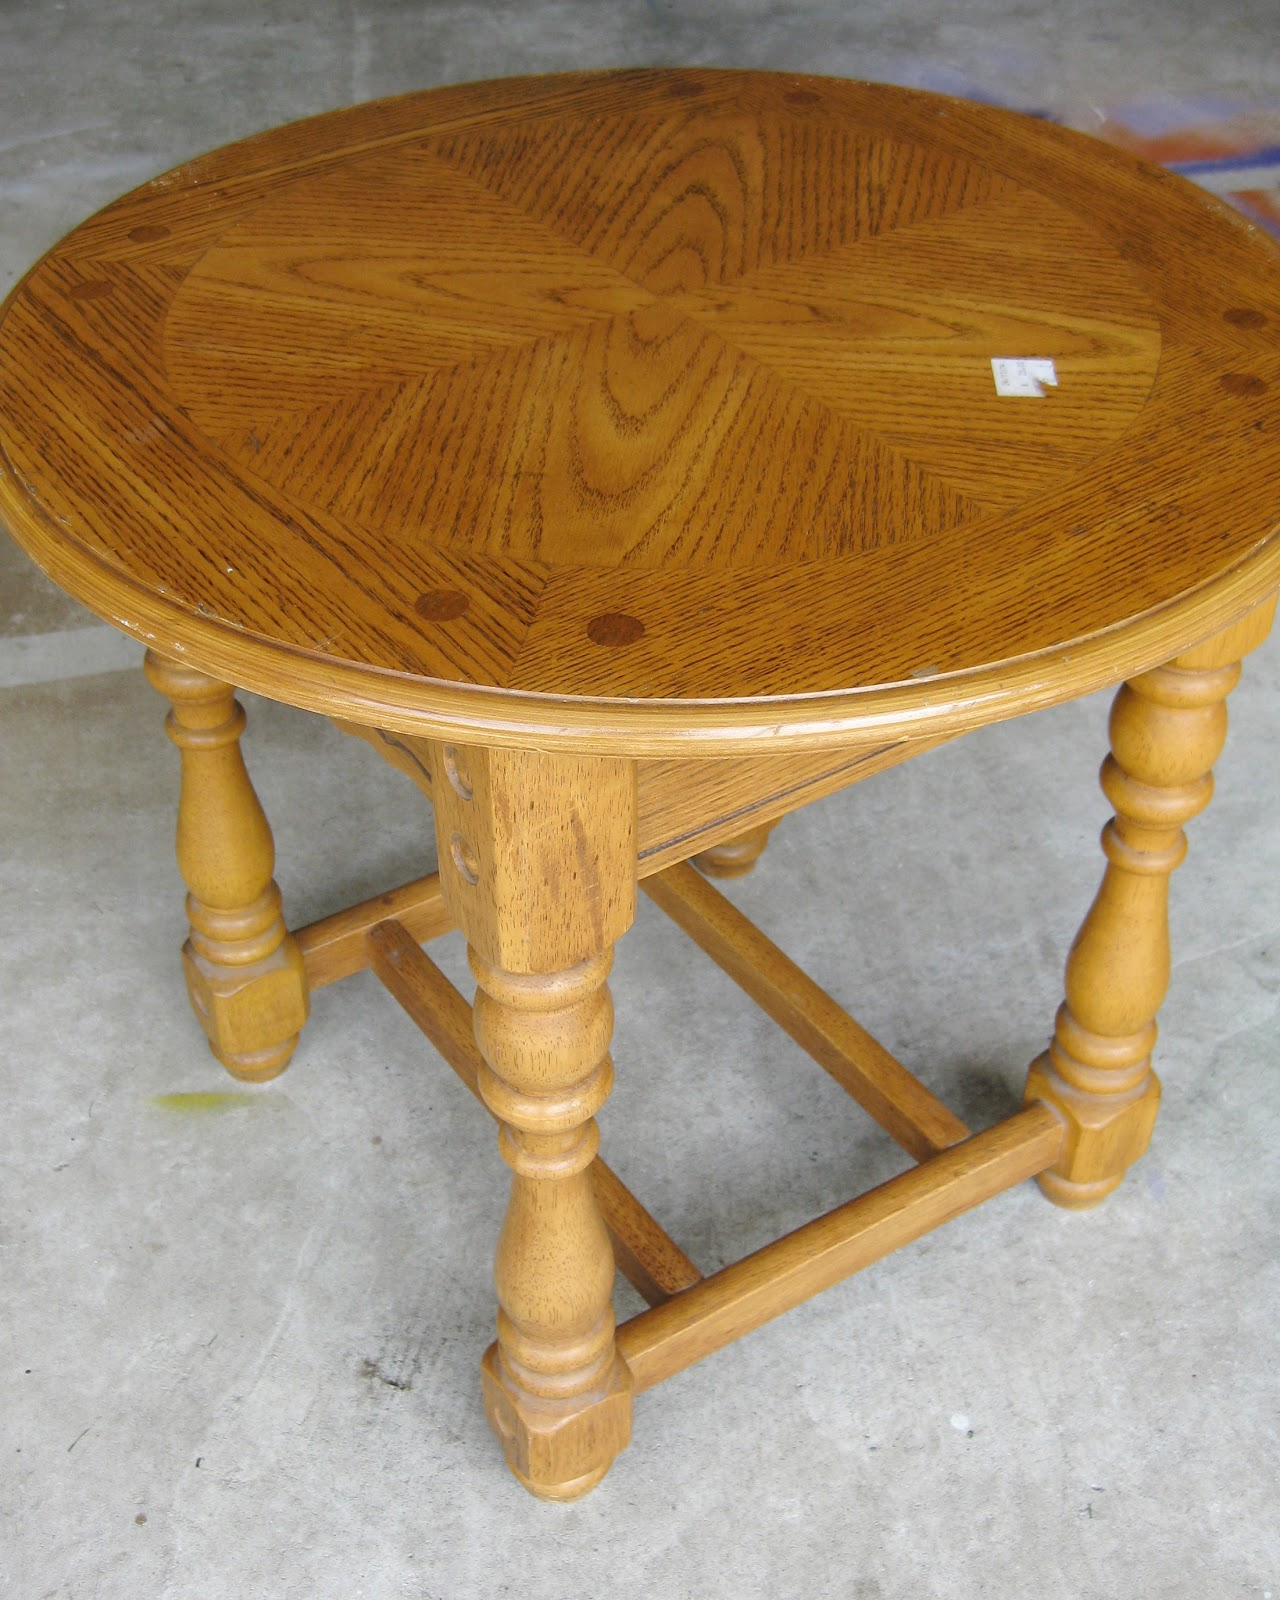 round top table with turned legs